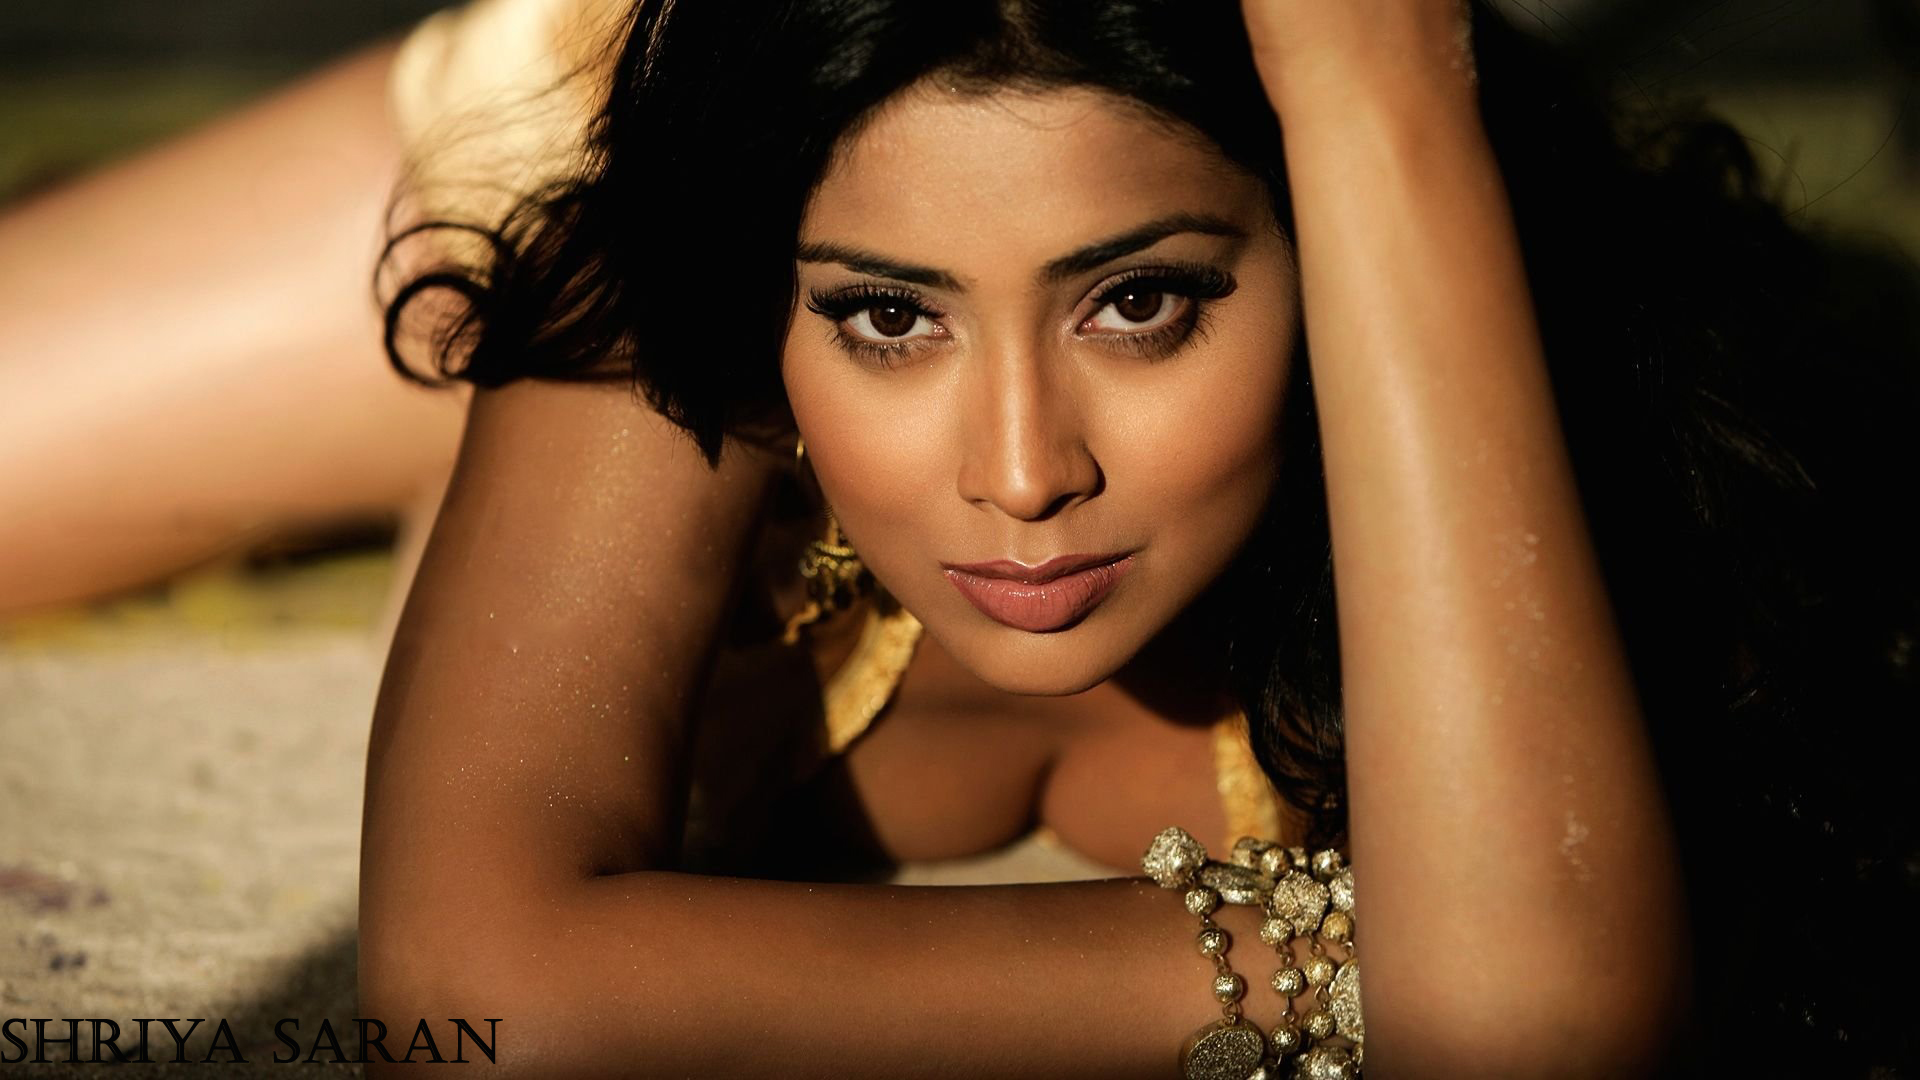 shriya-saran-hot-wallpapers-in-bikini